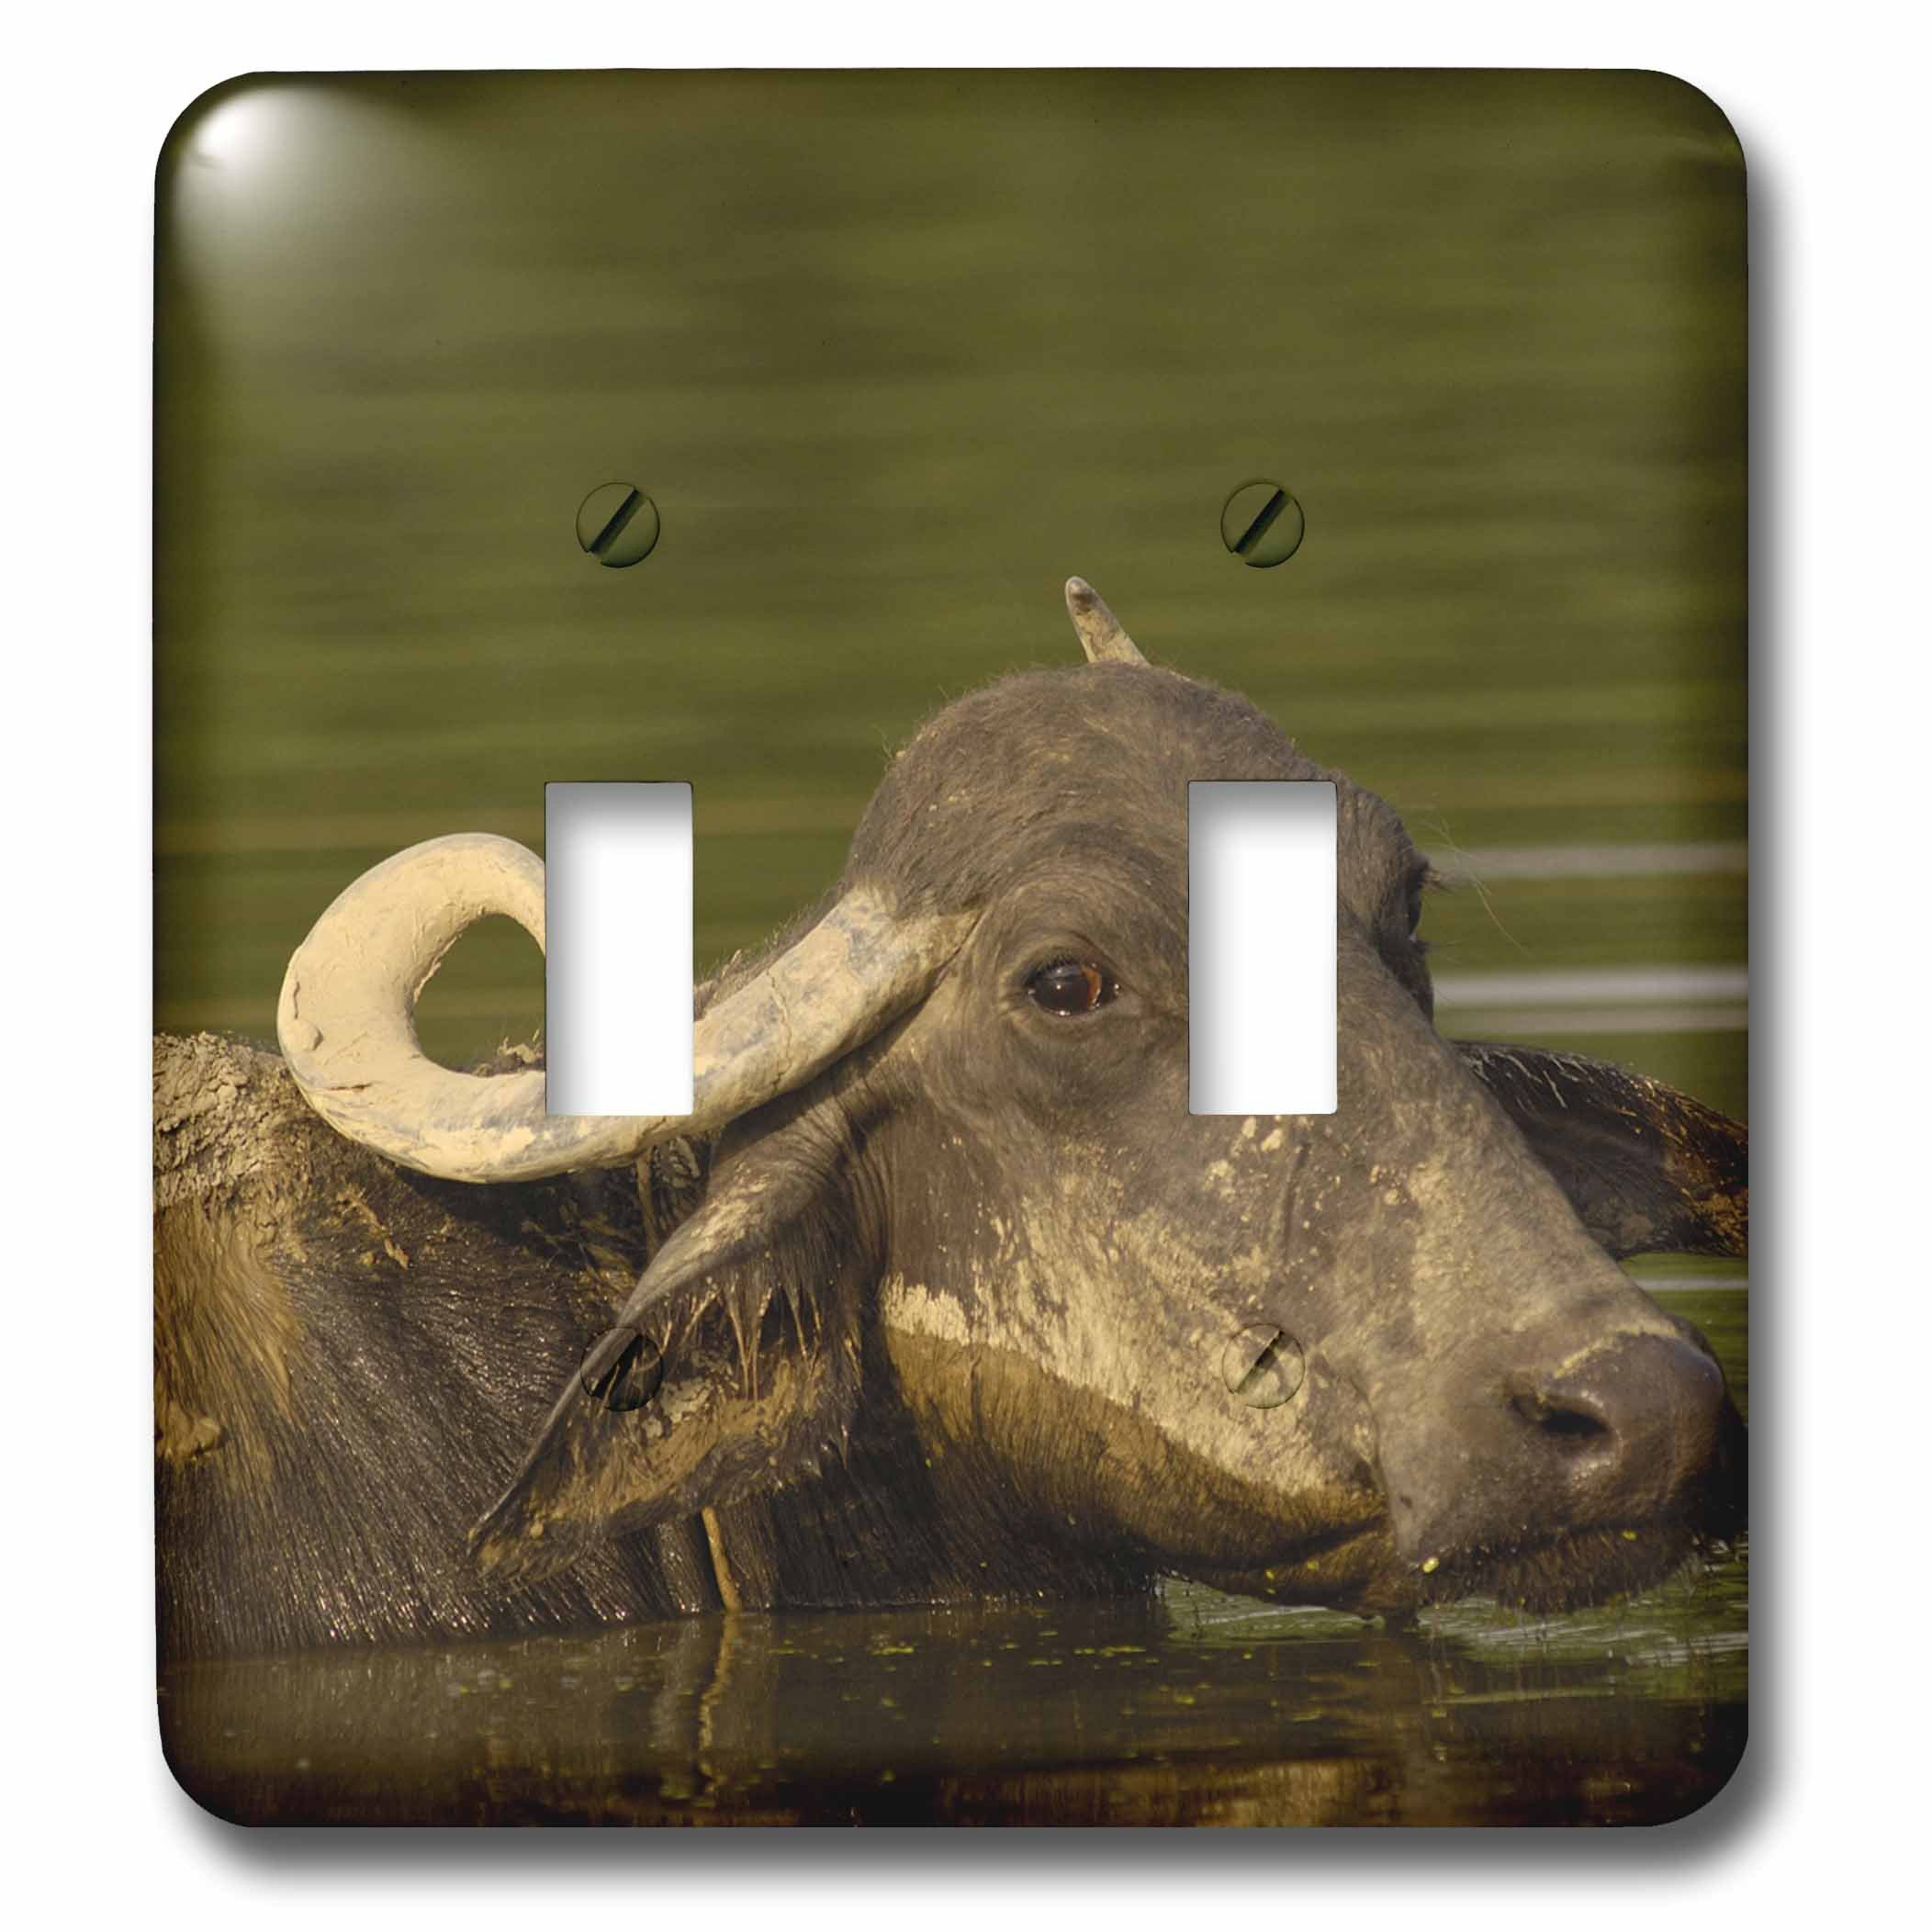 3dRose lsp_70868_2 Water Buffalo, Wildlife, Bharatpur Village, India-As10 Pox0543 Pete Oxford Double Toggle Switch